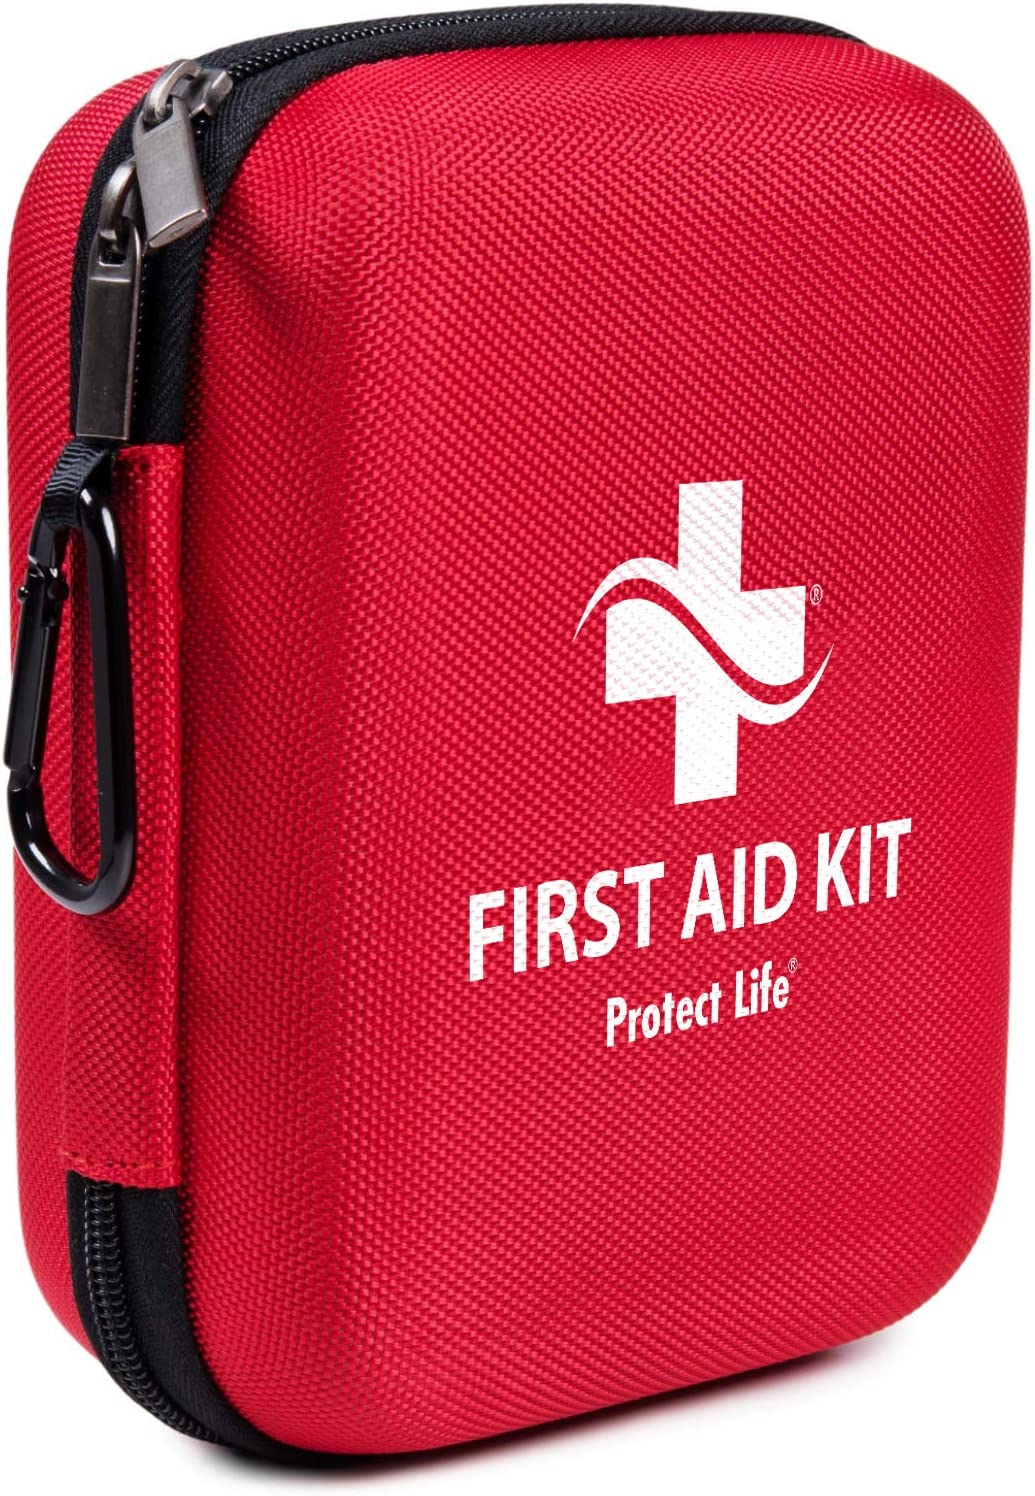 Protect Life First Aid Kit